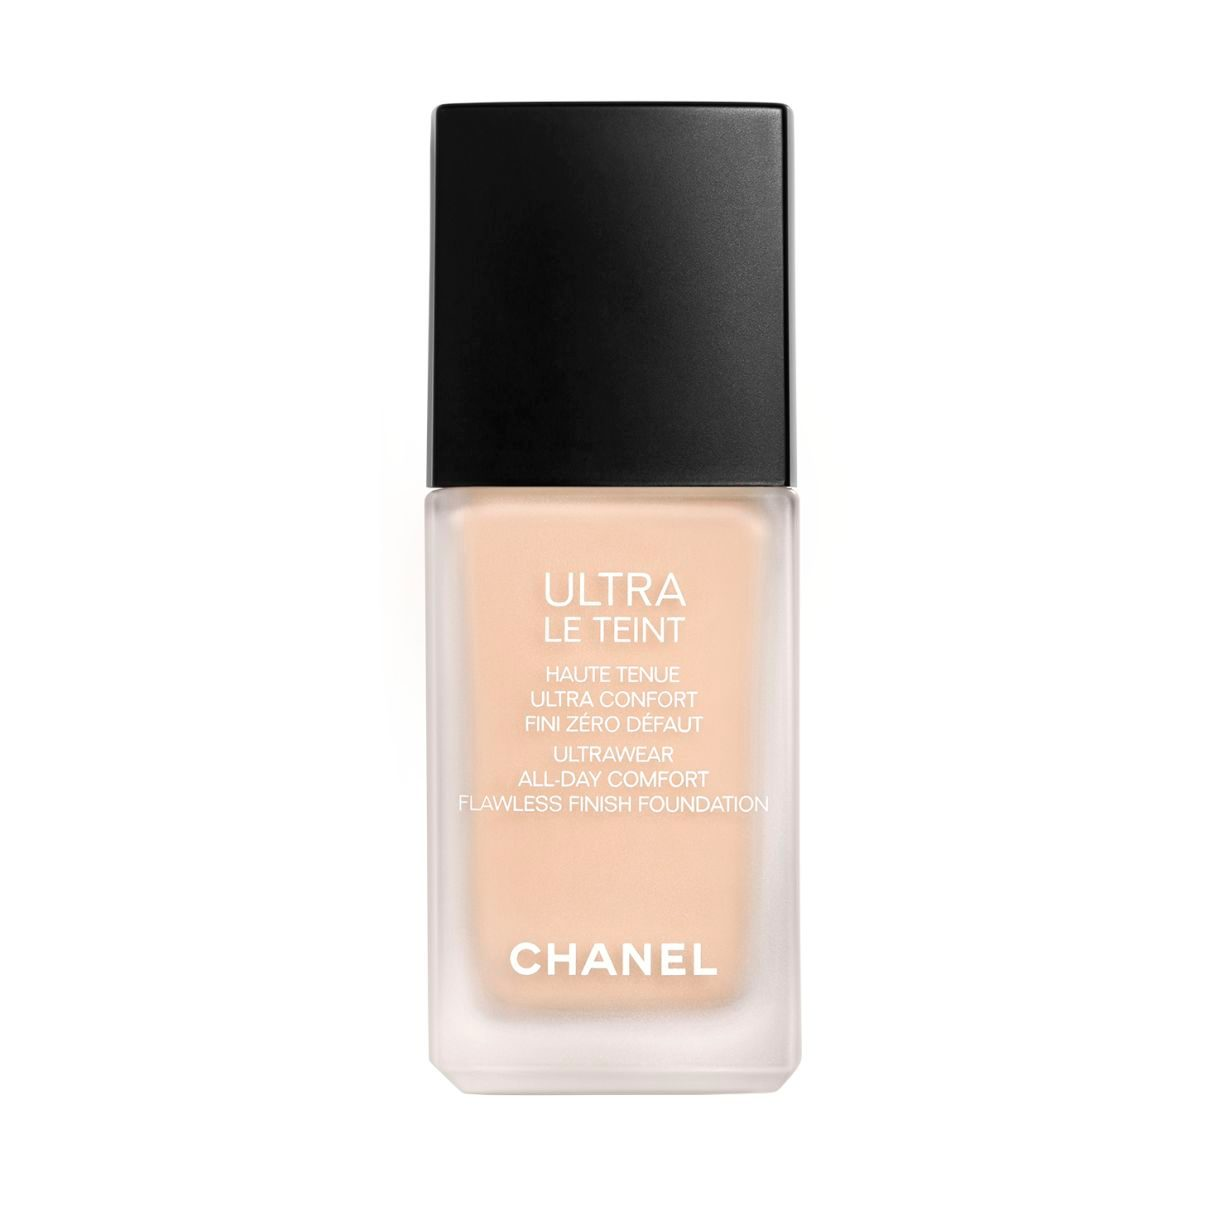 ULTRA LE TEINT ULTRAWEAR - ALL-DAY COMFORT - FLAWLESS FINISH FOUNDATION BR12 - BEIGE ROSÉ 12